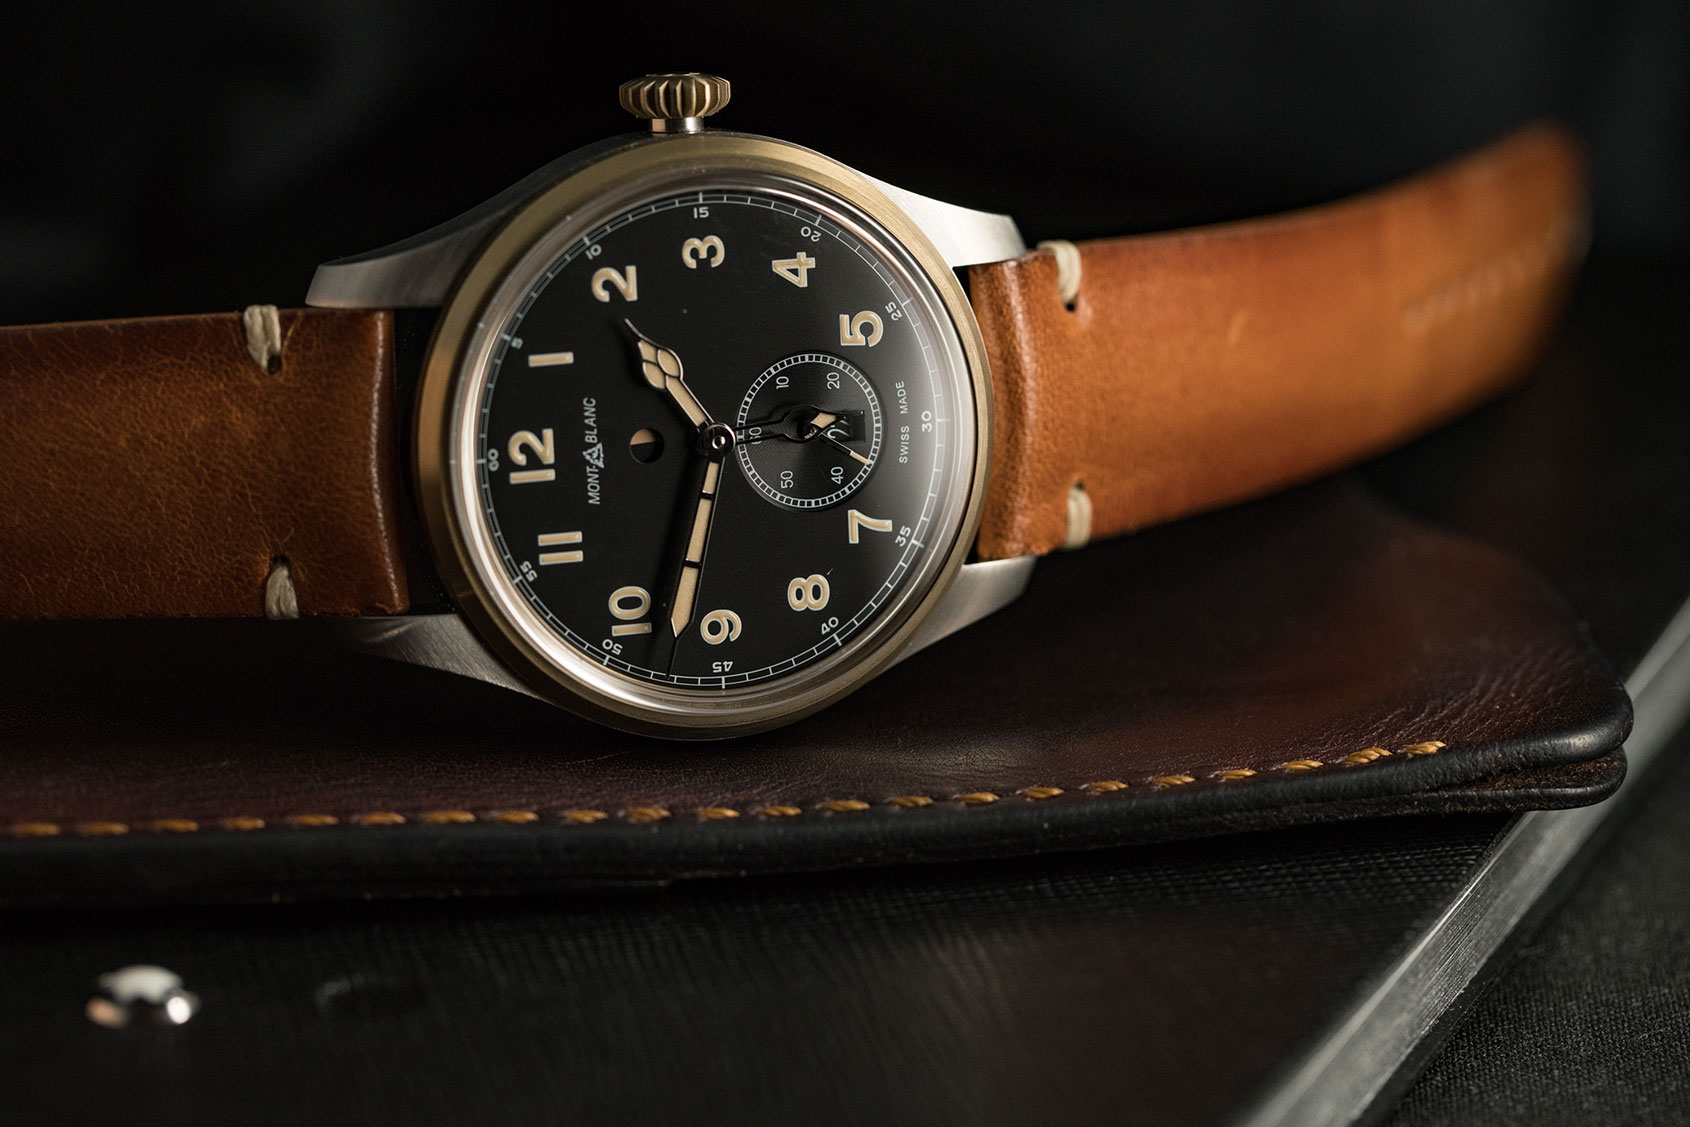 Being a man of style, what outfits would you pair this with? Everything and anything. For me this watch is a true all-rounder, equally as comfortable on the ...